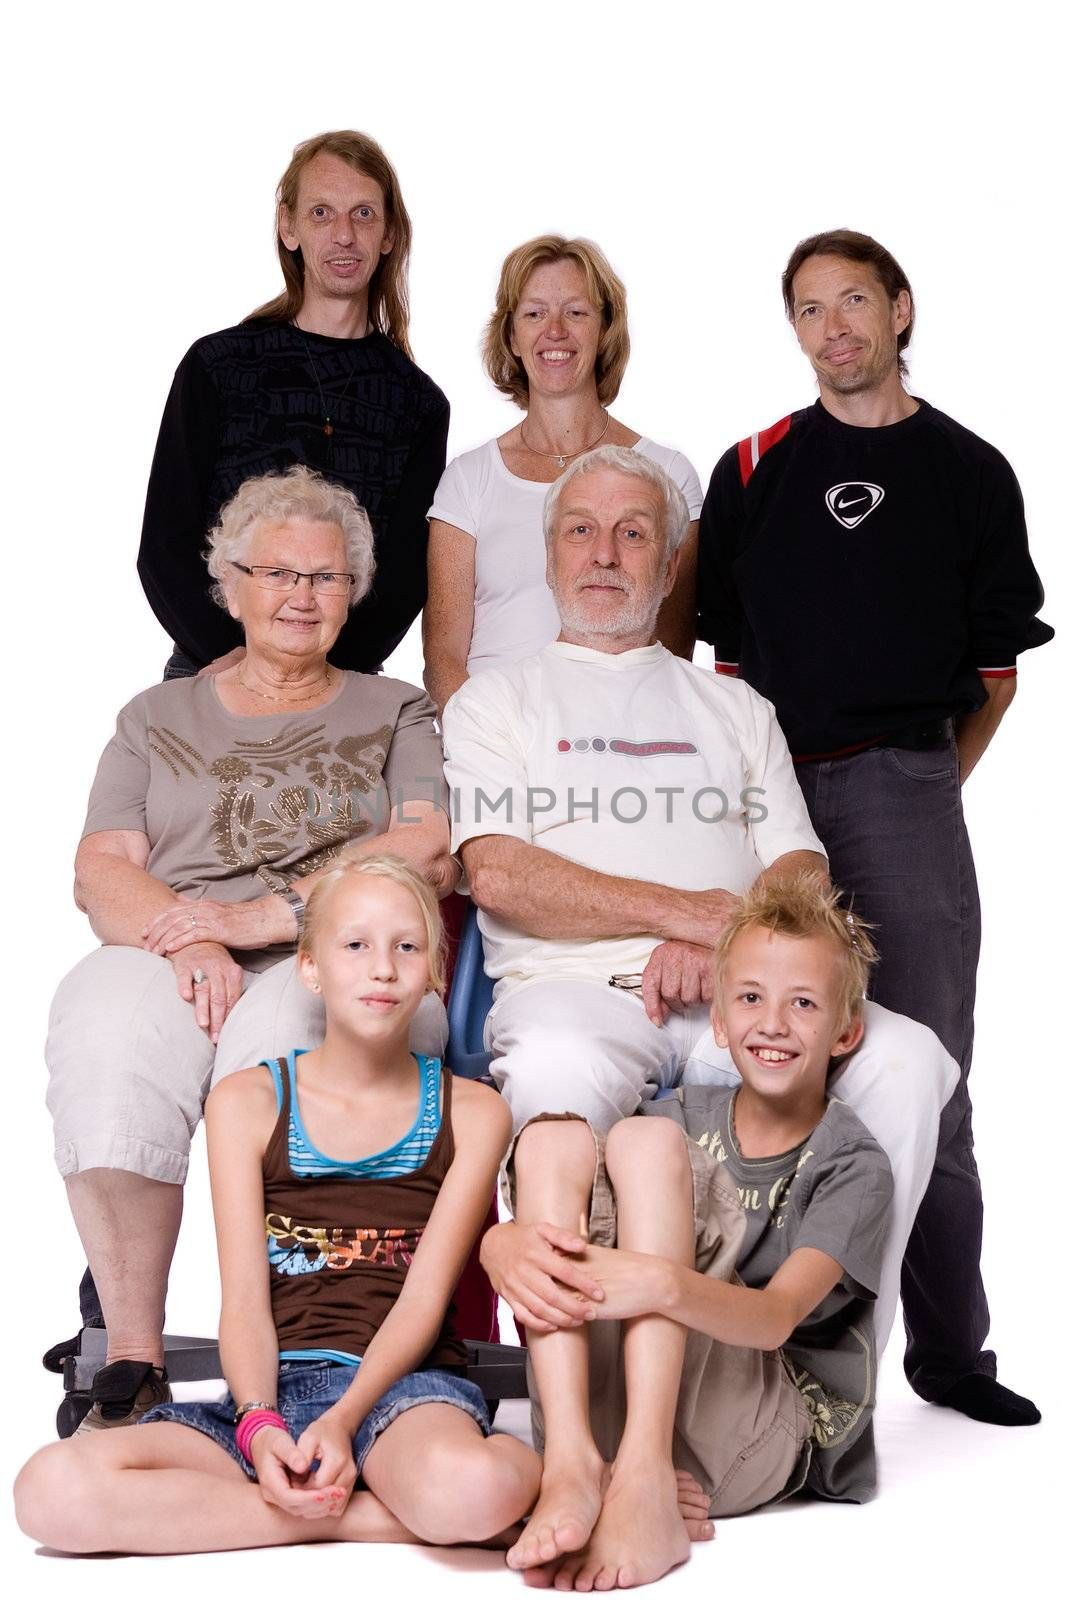 Studio family portrait of a family trying to be serious